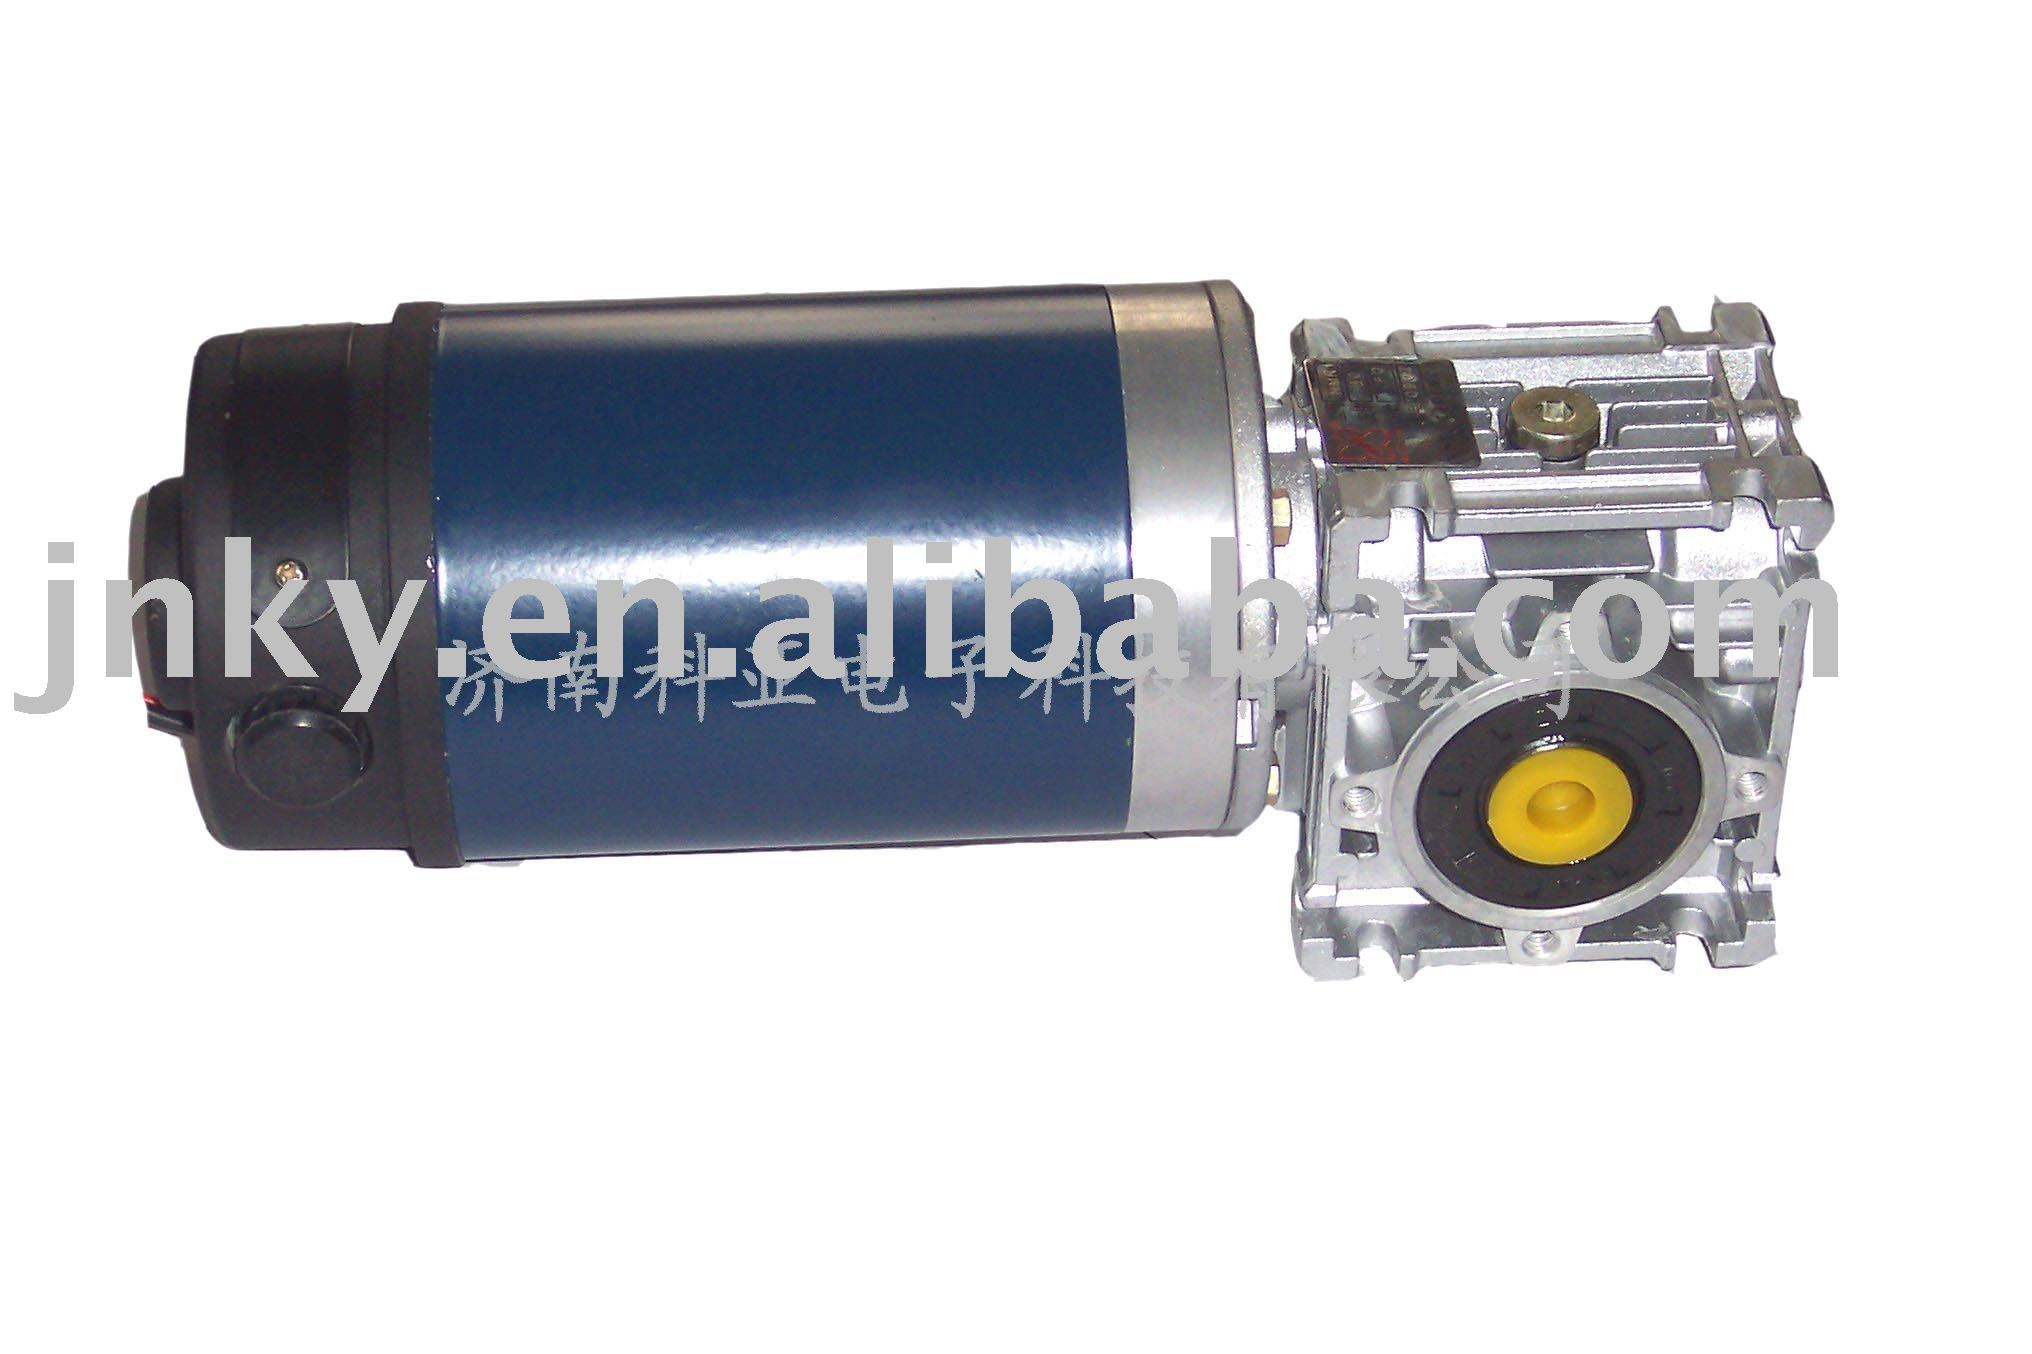 24v 500w Dc Worm Gear Motor View 24v 500w Dc Worm Gear Motor Keya Product Details From Jinan